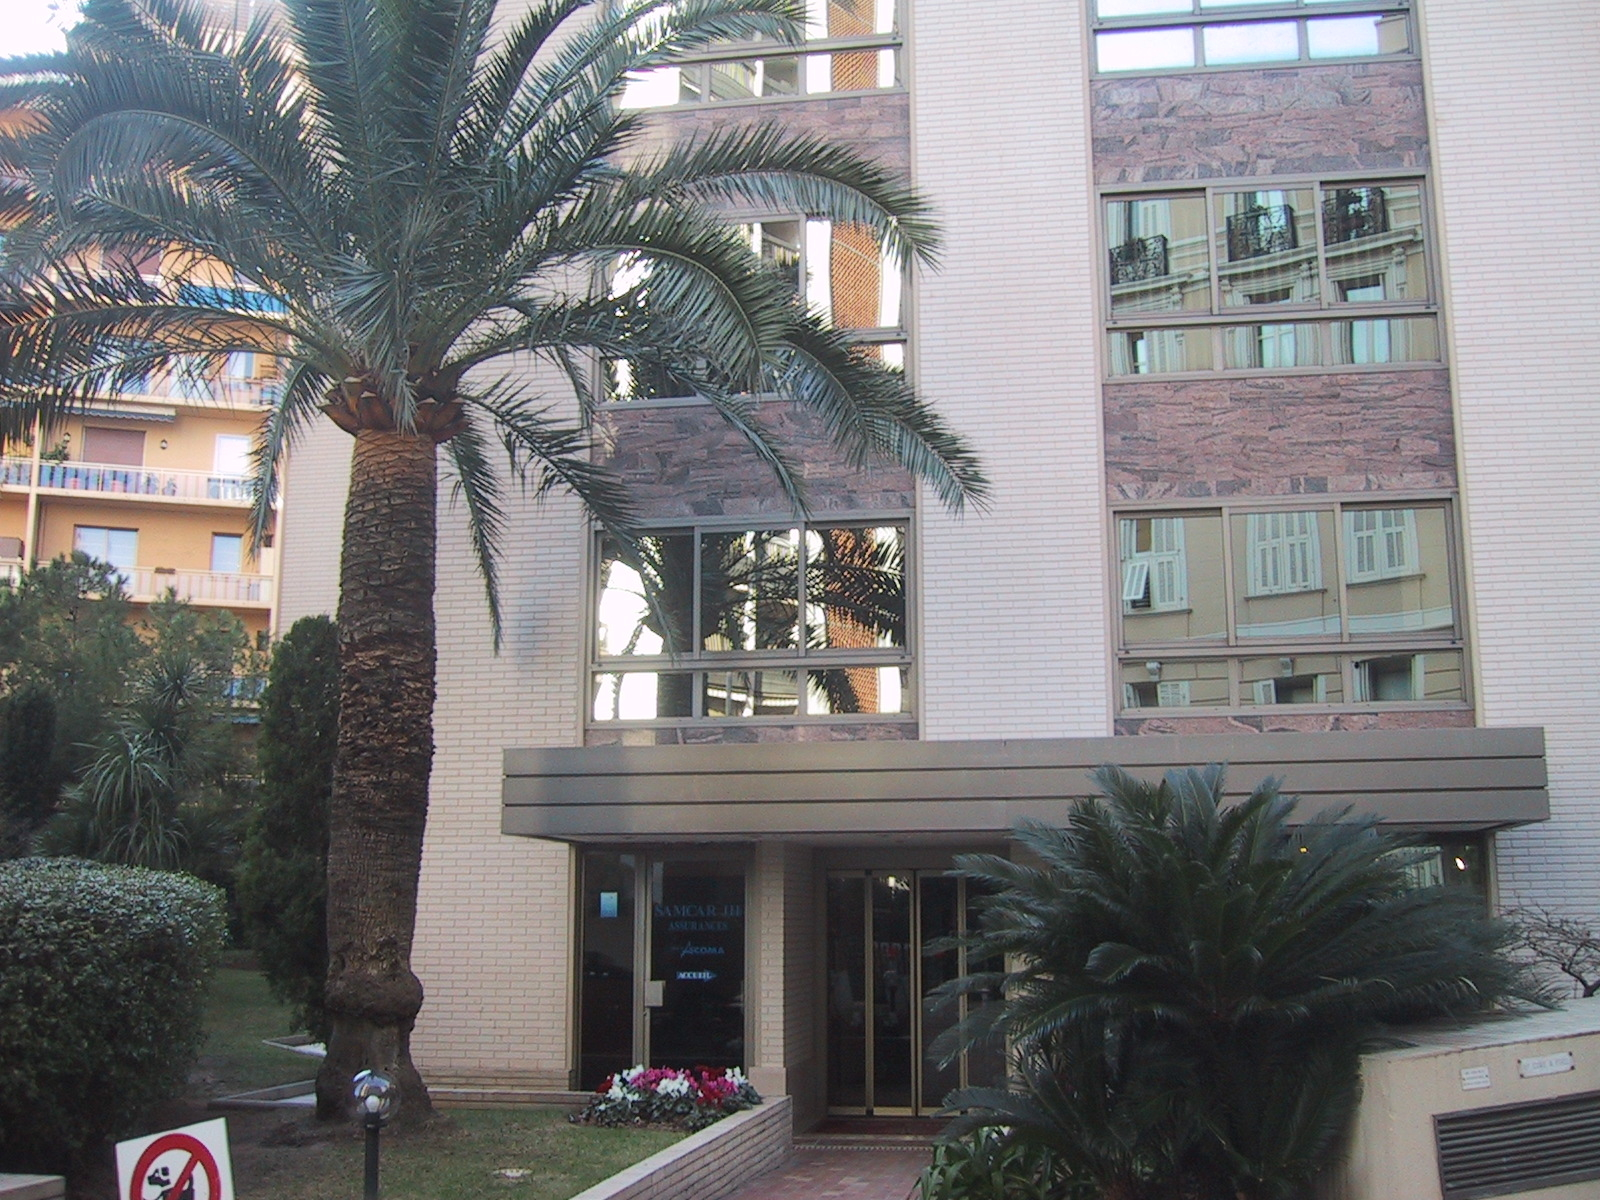 Bureau central est ouest offices for rent in monaco